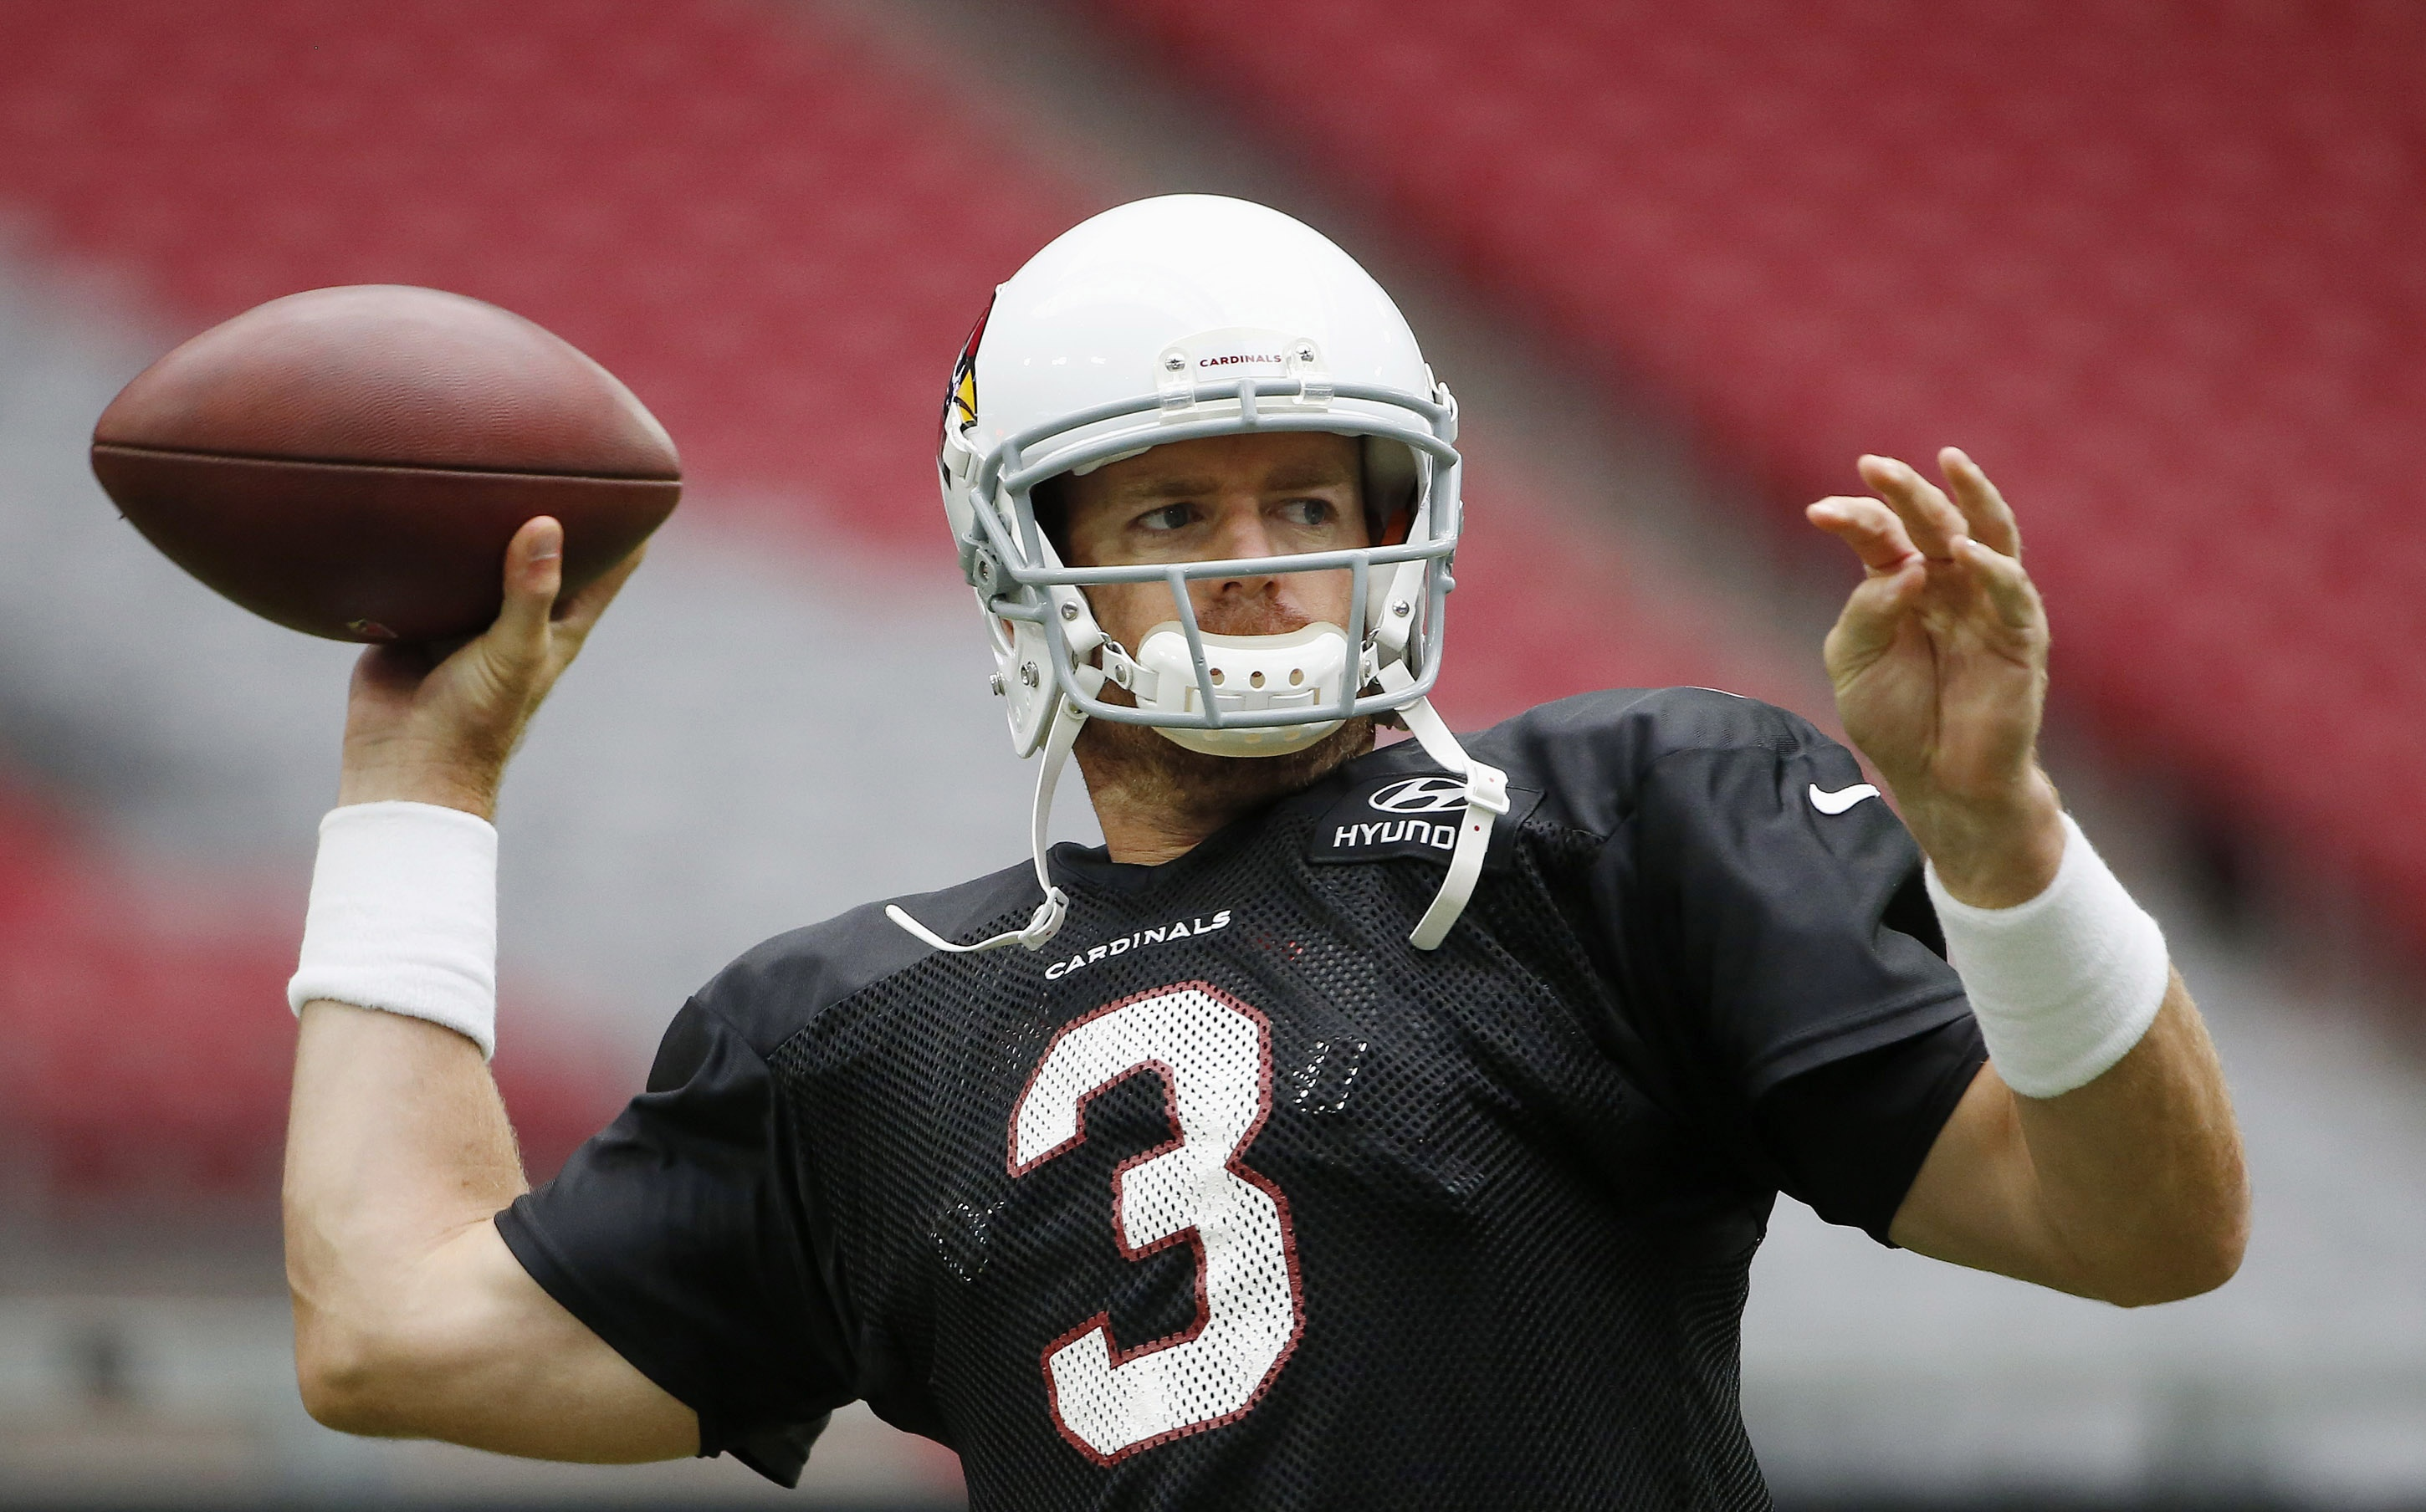 Arizona Cardinals' Carson Palmer throws a pass as he warms up during an NFL football training camp practice, Monday, Aug. 3, 2015, in Glendale, Ariz. (AP Photo/Ross D. Franklin)